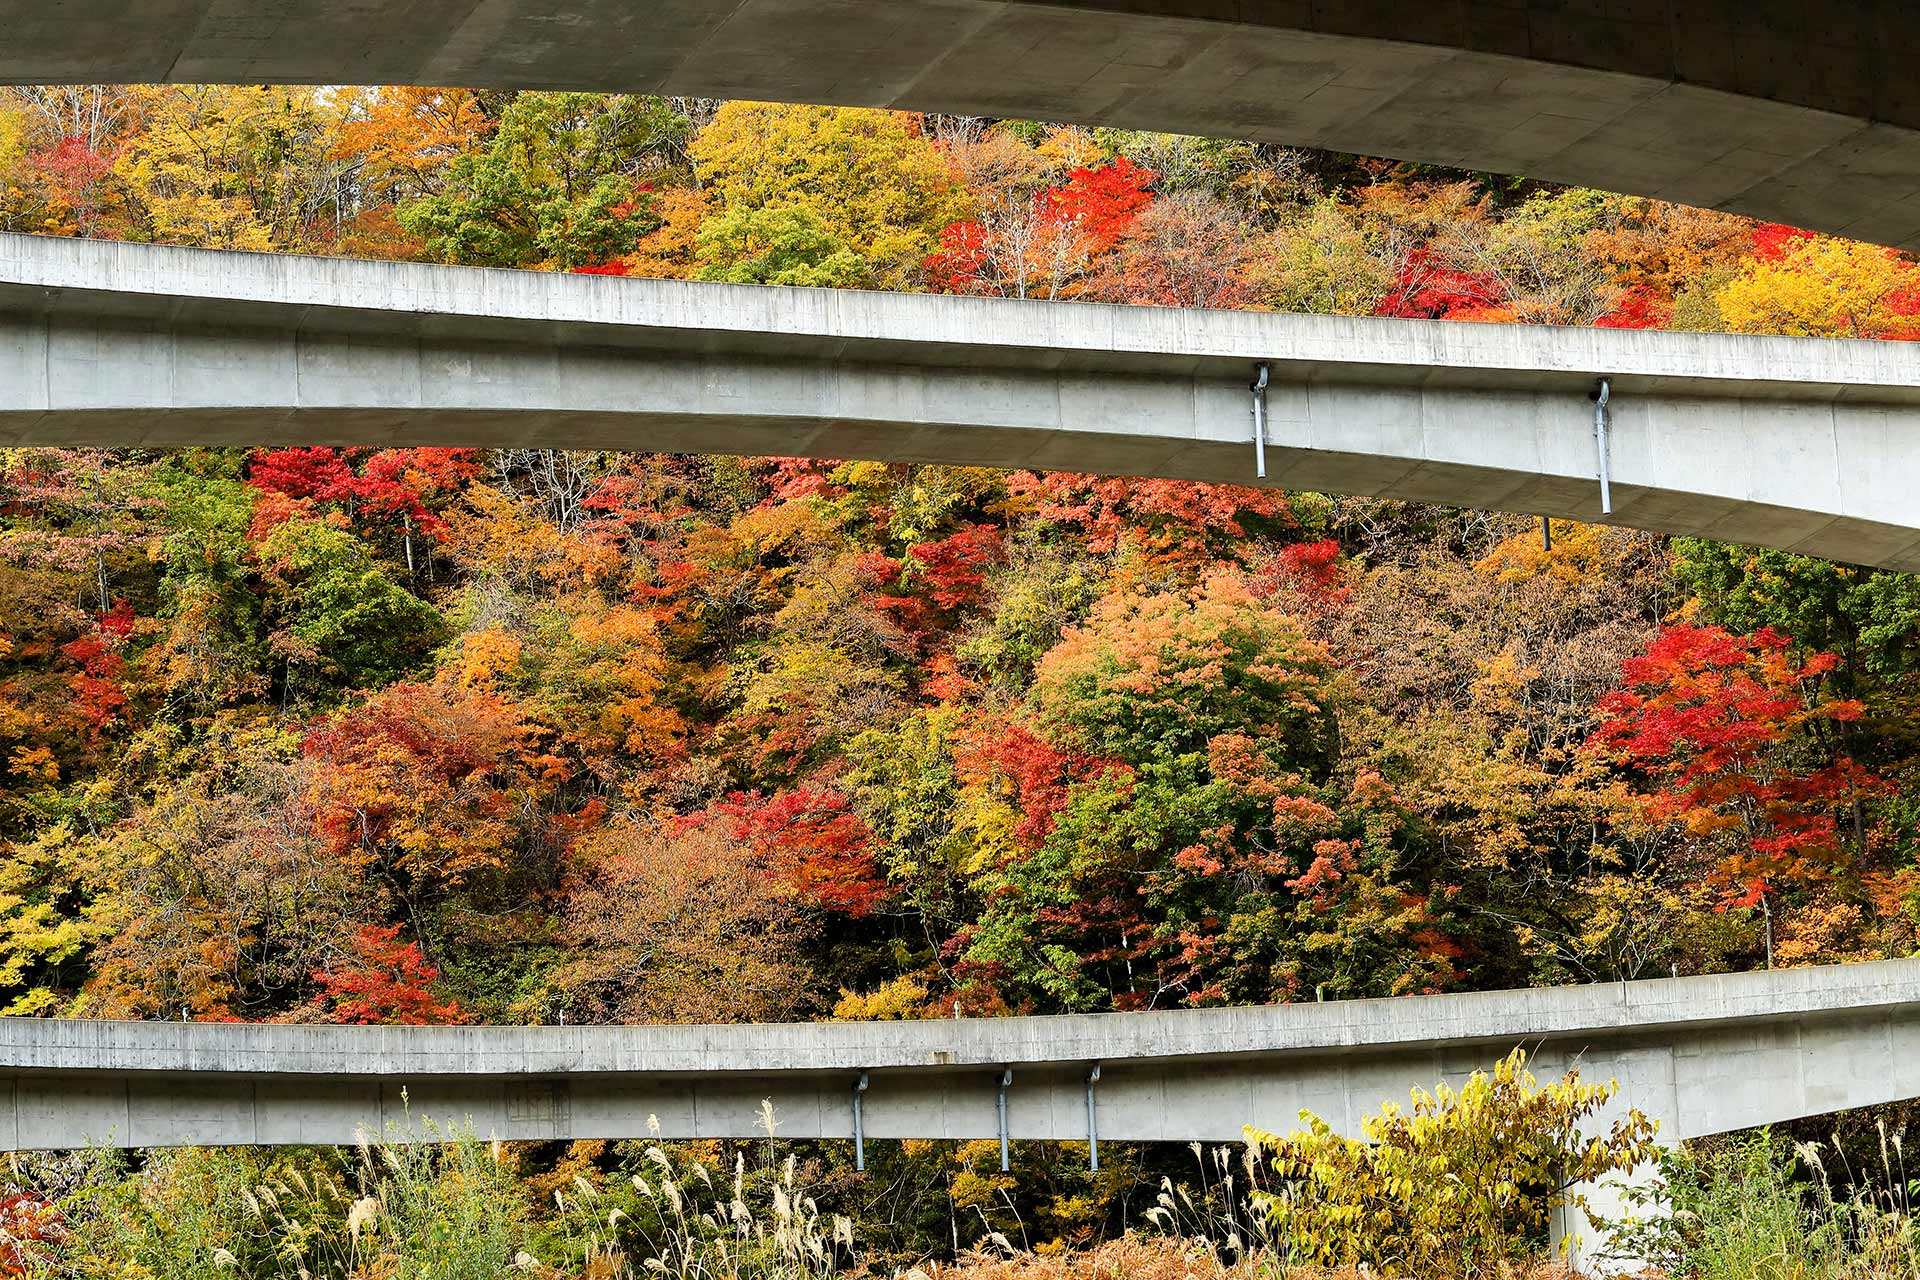 Viaducts crossing the Japanese forest